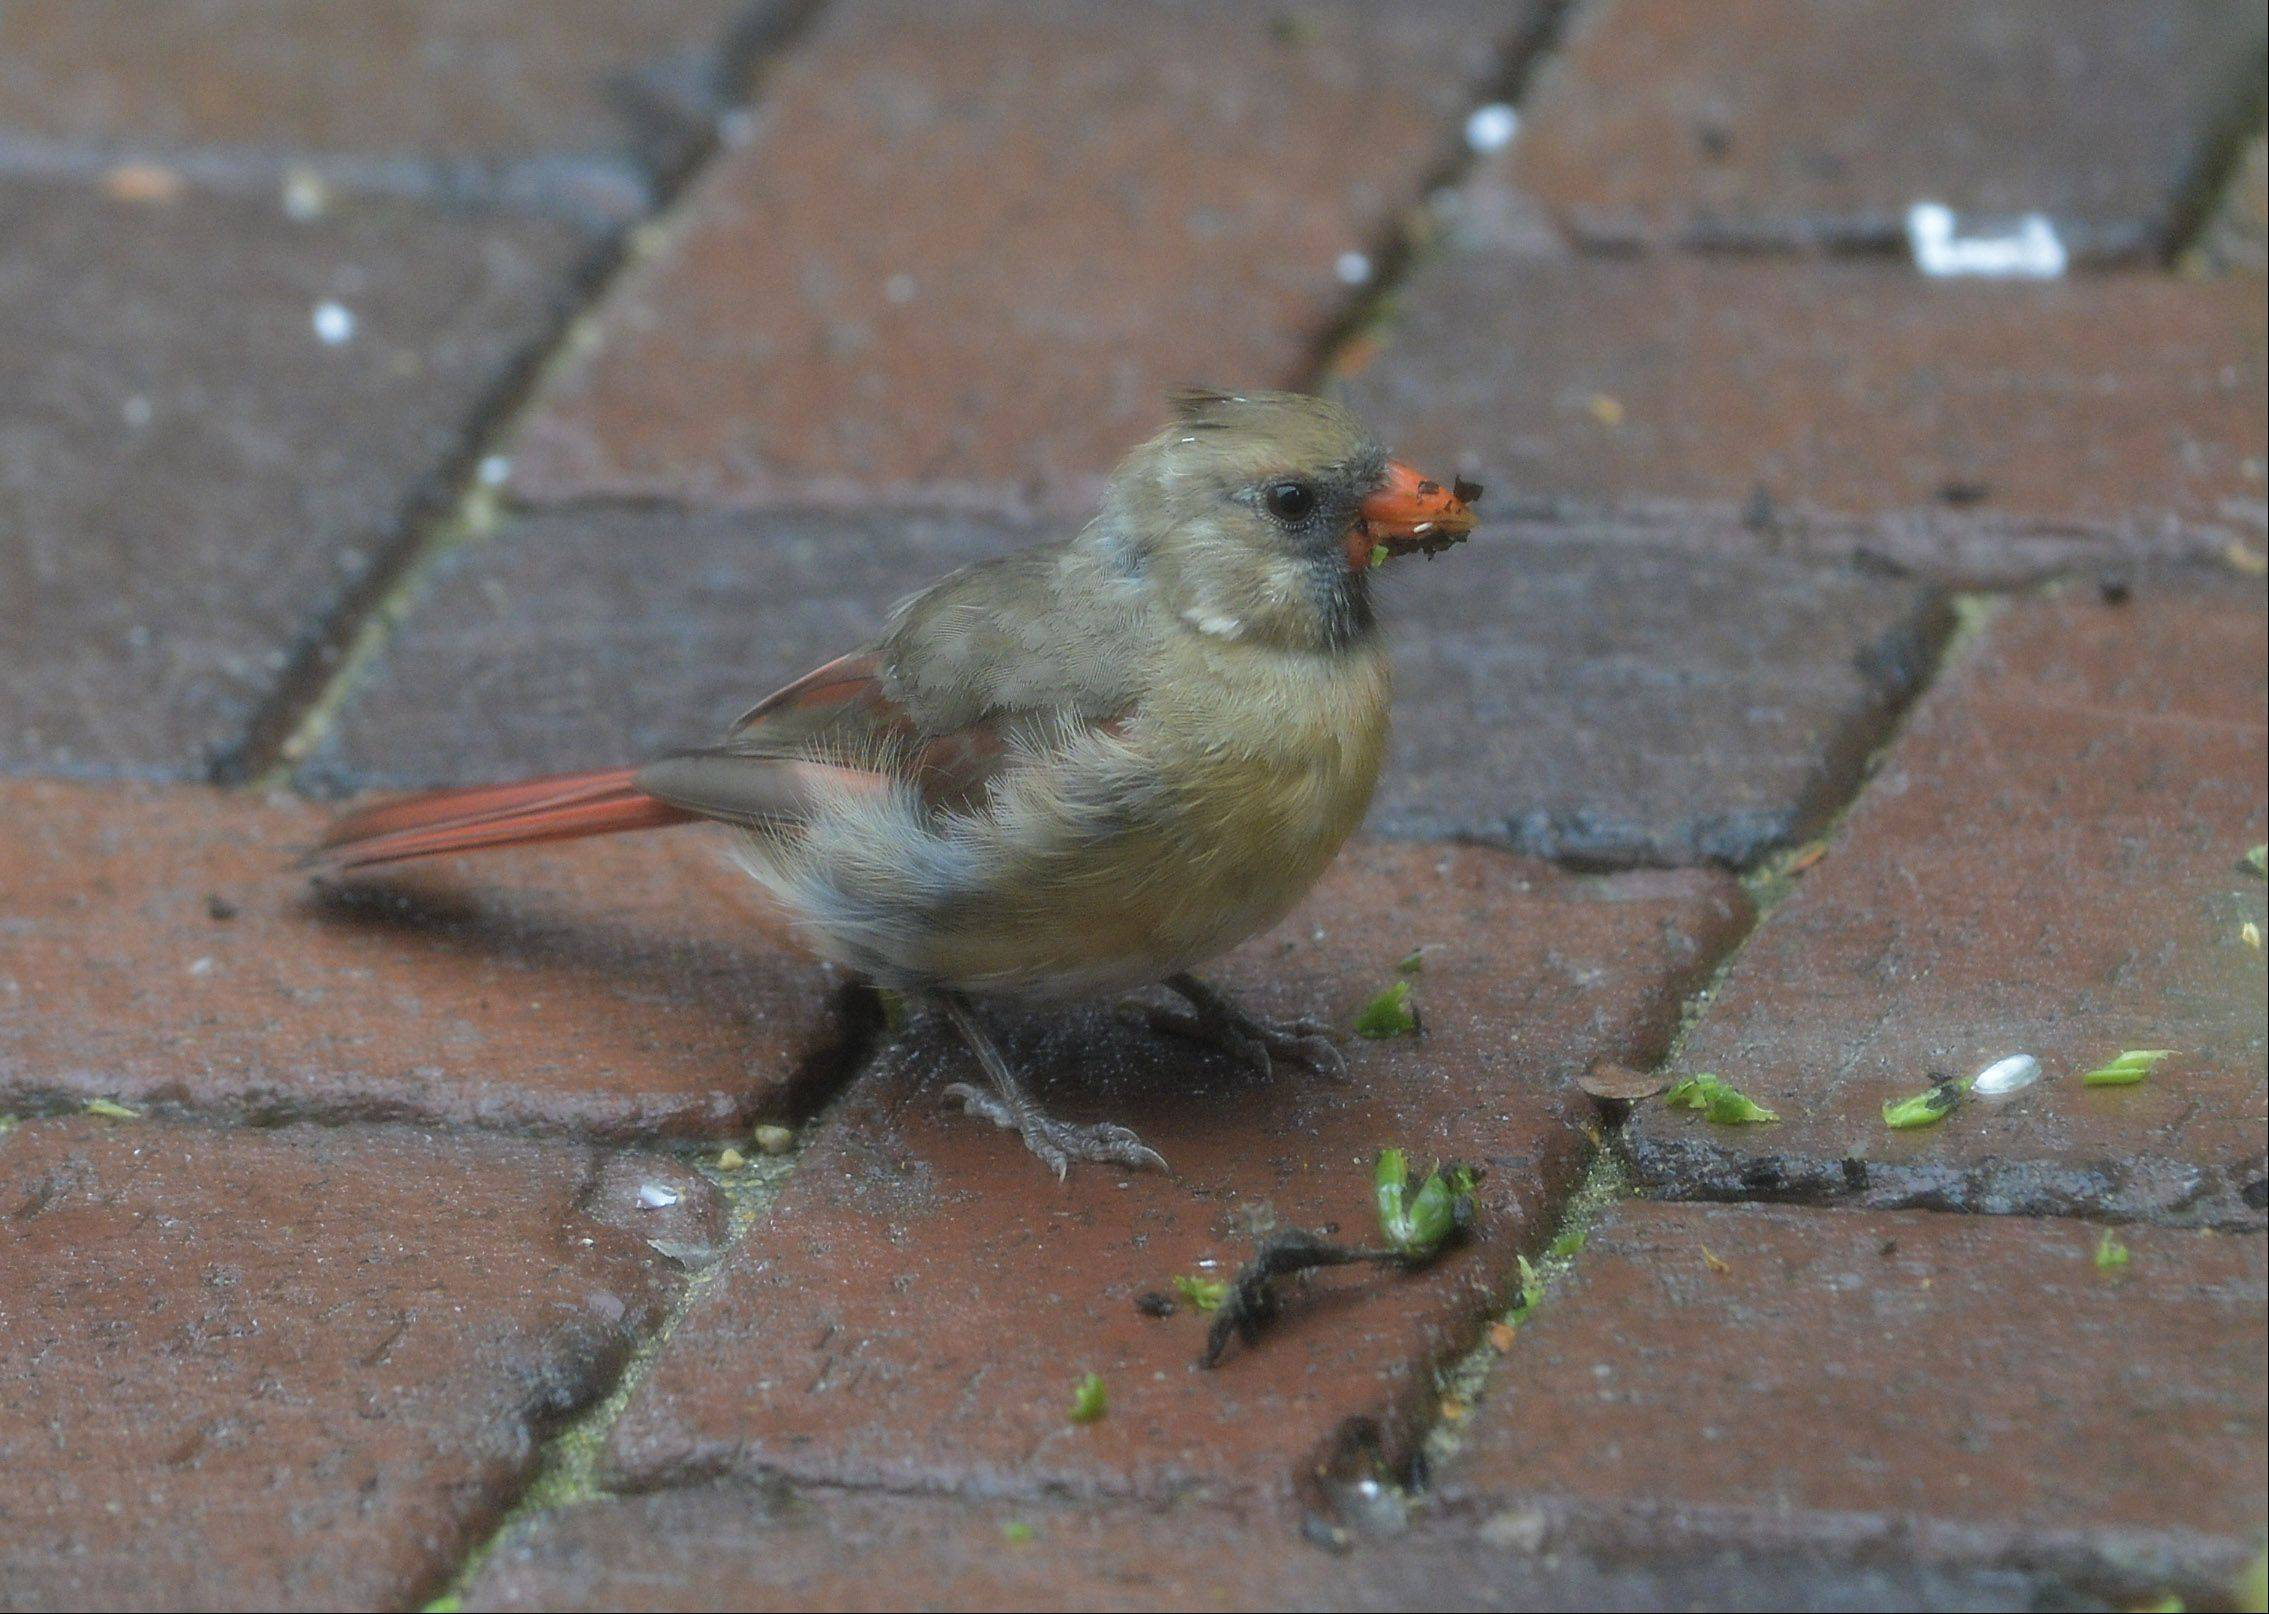 A young cardinal dines on a breakfast of seeds on the patio of an Arlington Heights home. A sibling was nearby, and a male cardinal was watching over the youngsters from a perch on the seat wall of the patio.